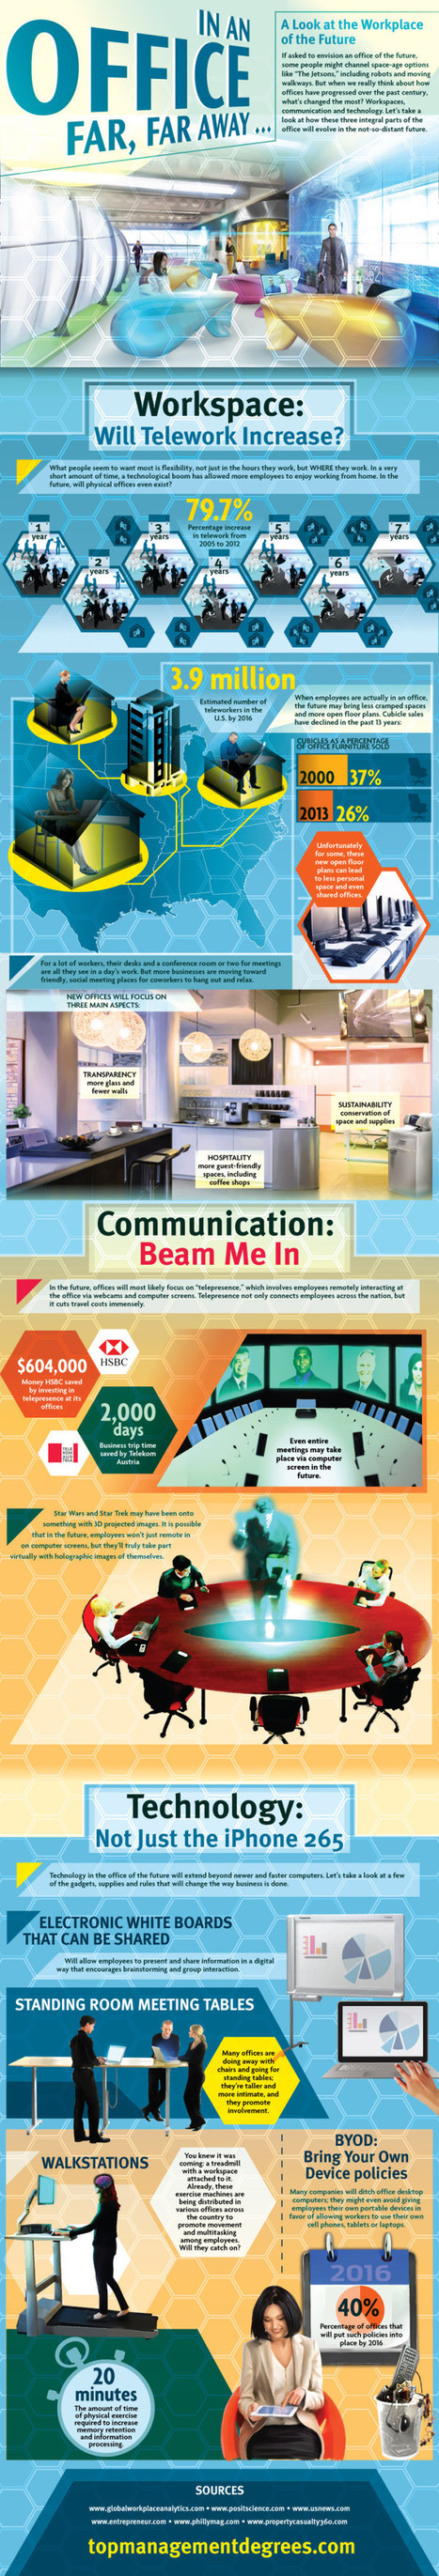 What Does The Office of the Future Look Like? [INFOGRAPHIC] | Innovative workplace solutions | Scoop.it